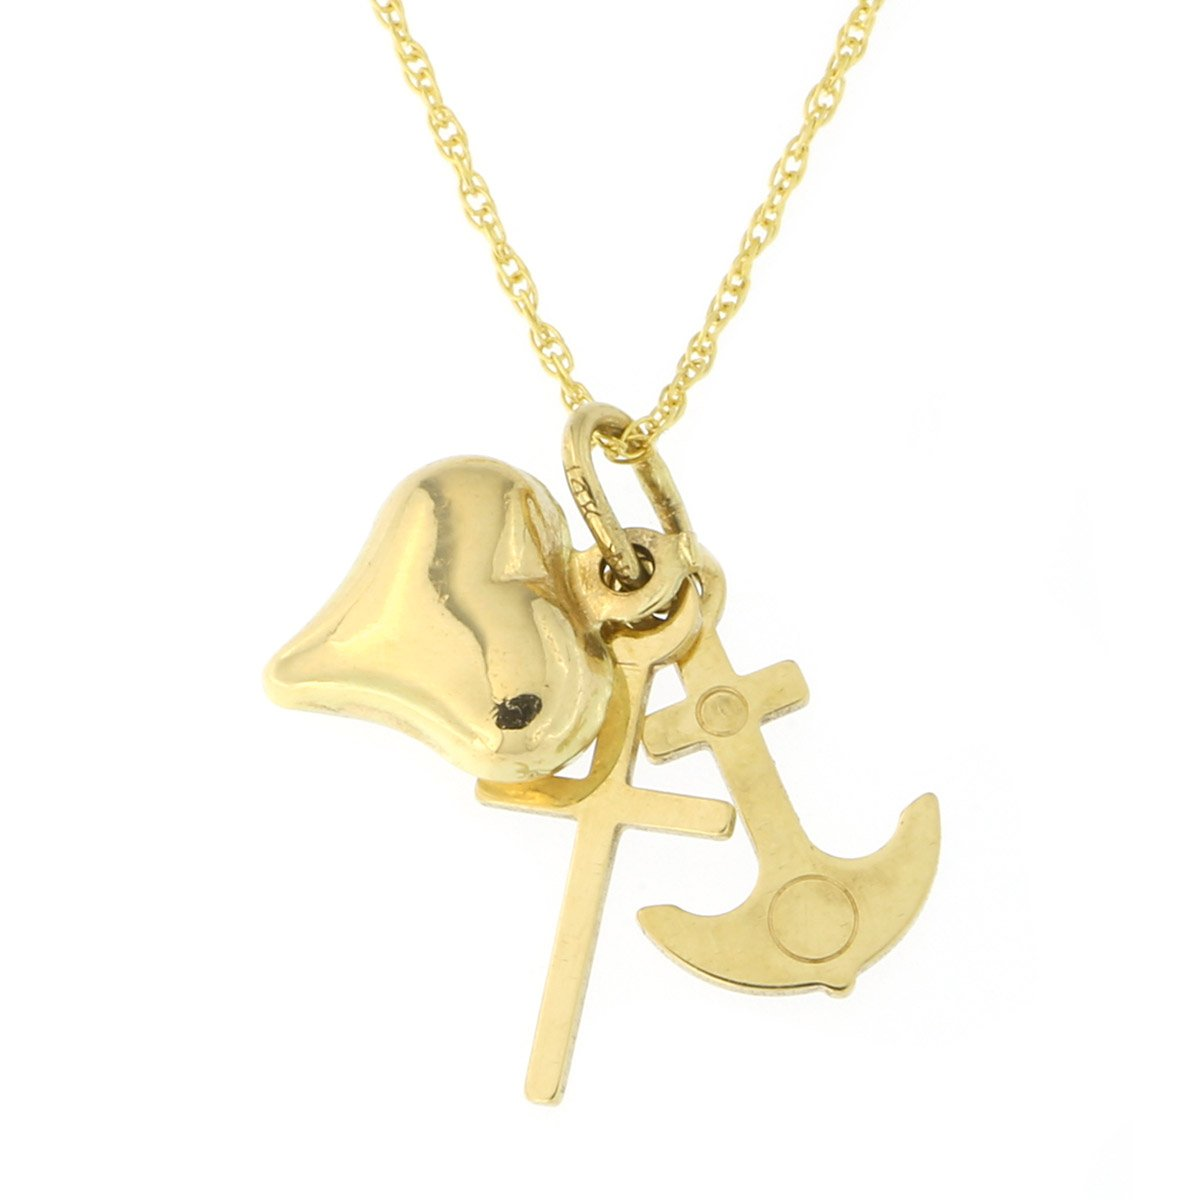 14k Yellow Gold Cross, Anchor and Heart Pendant Necklace